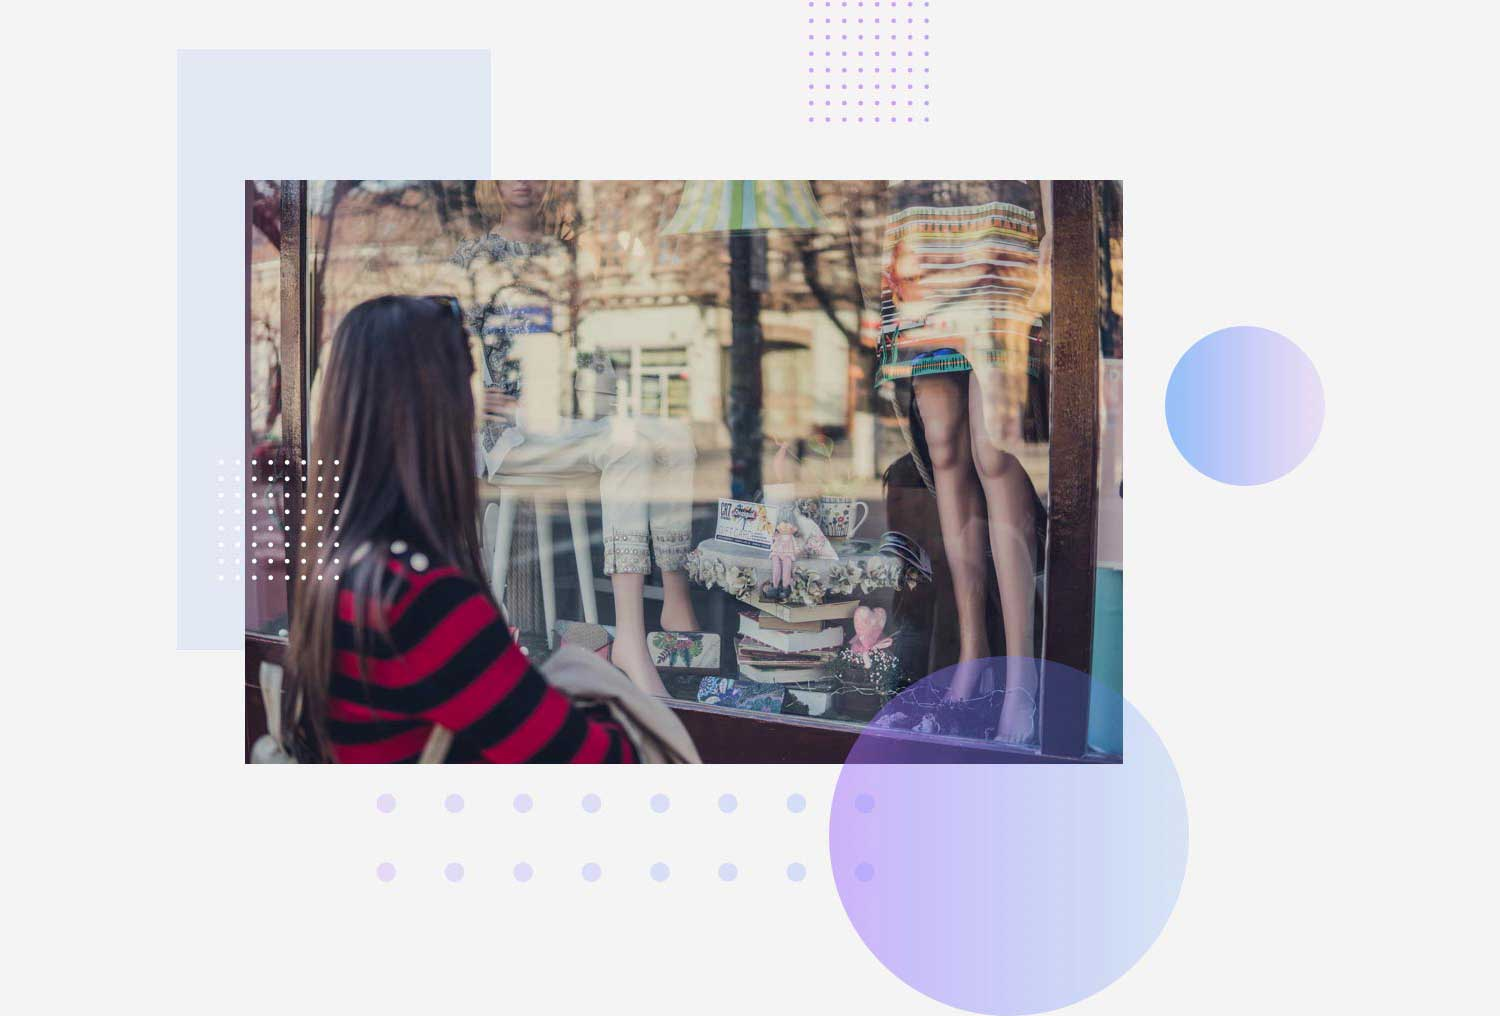 woman looking through glass storefront